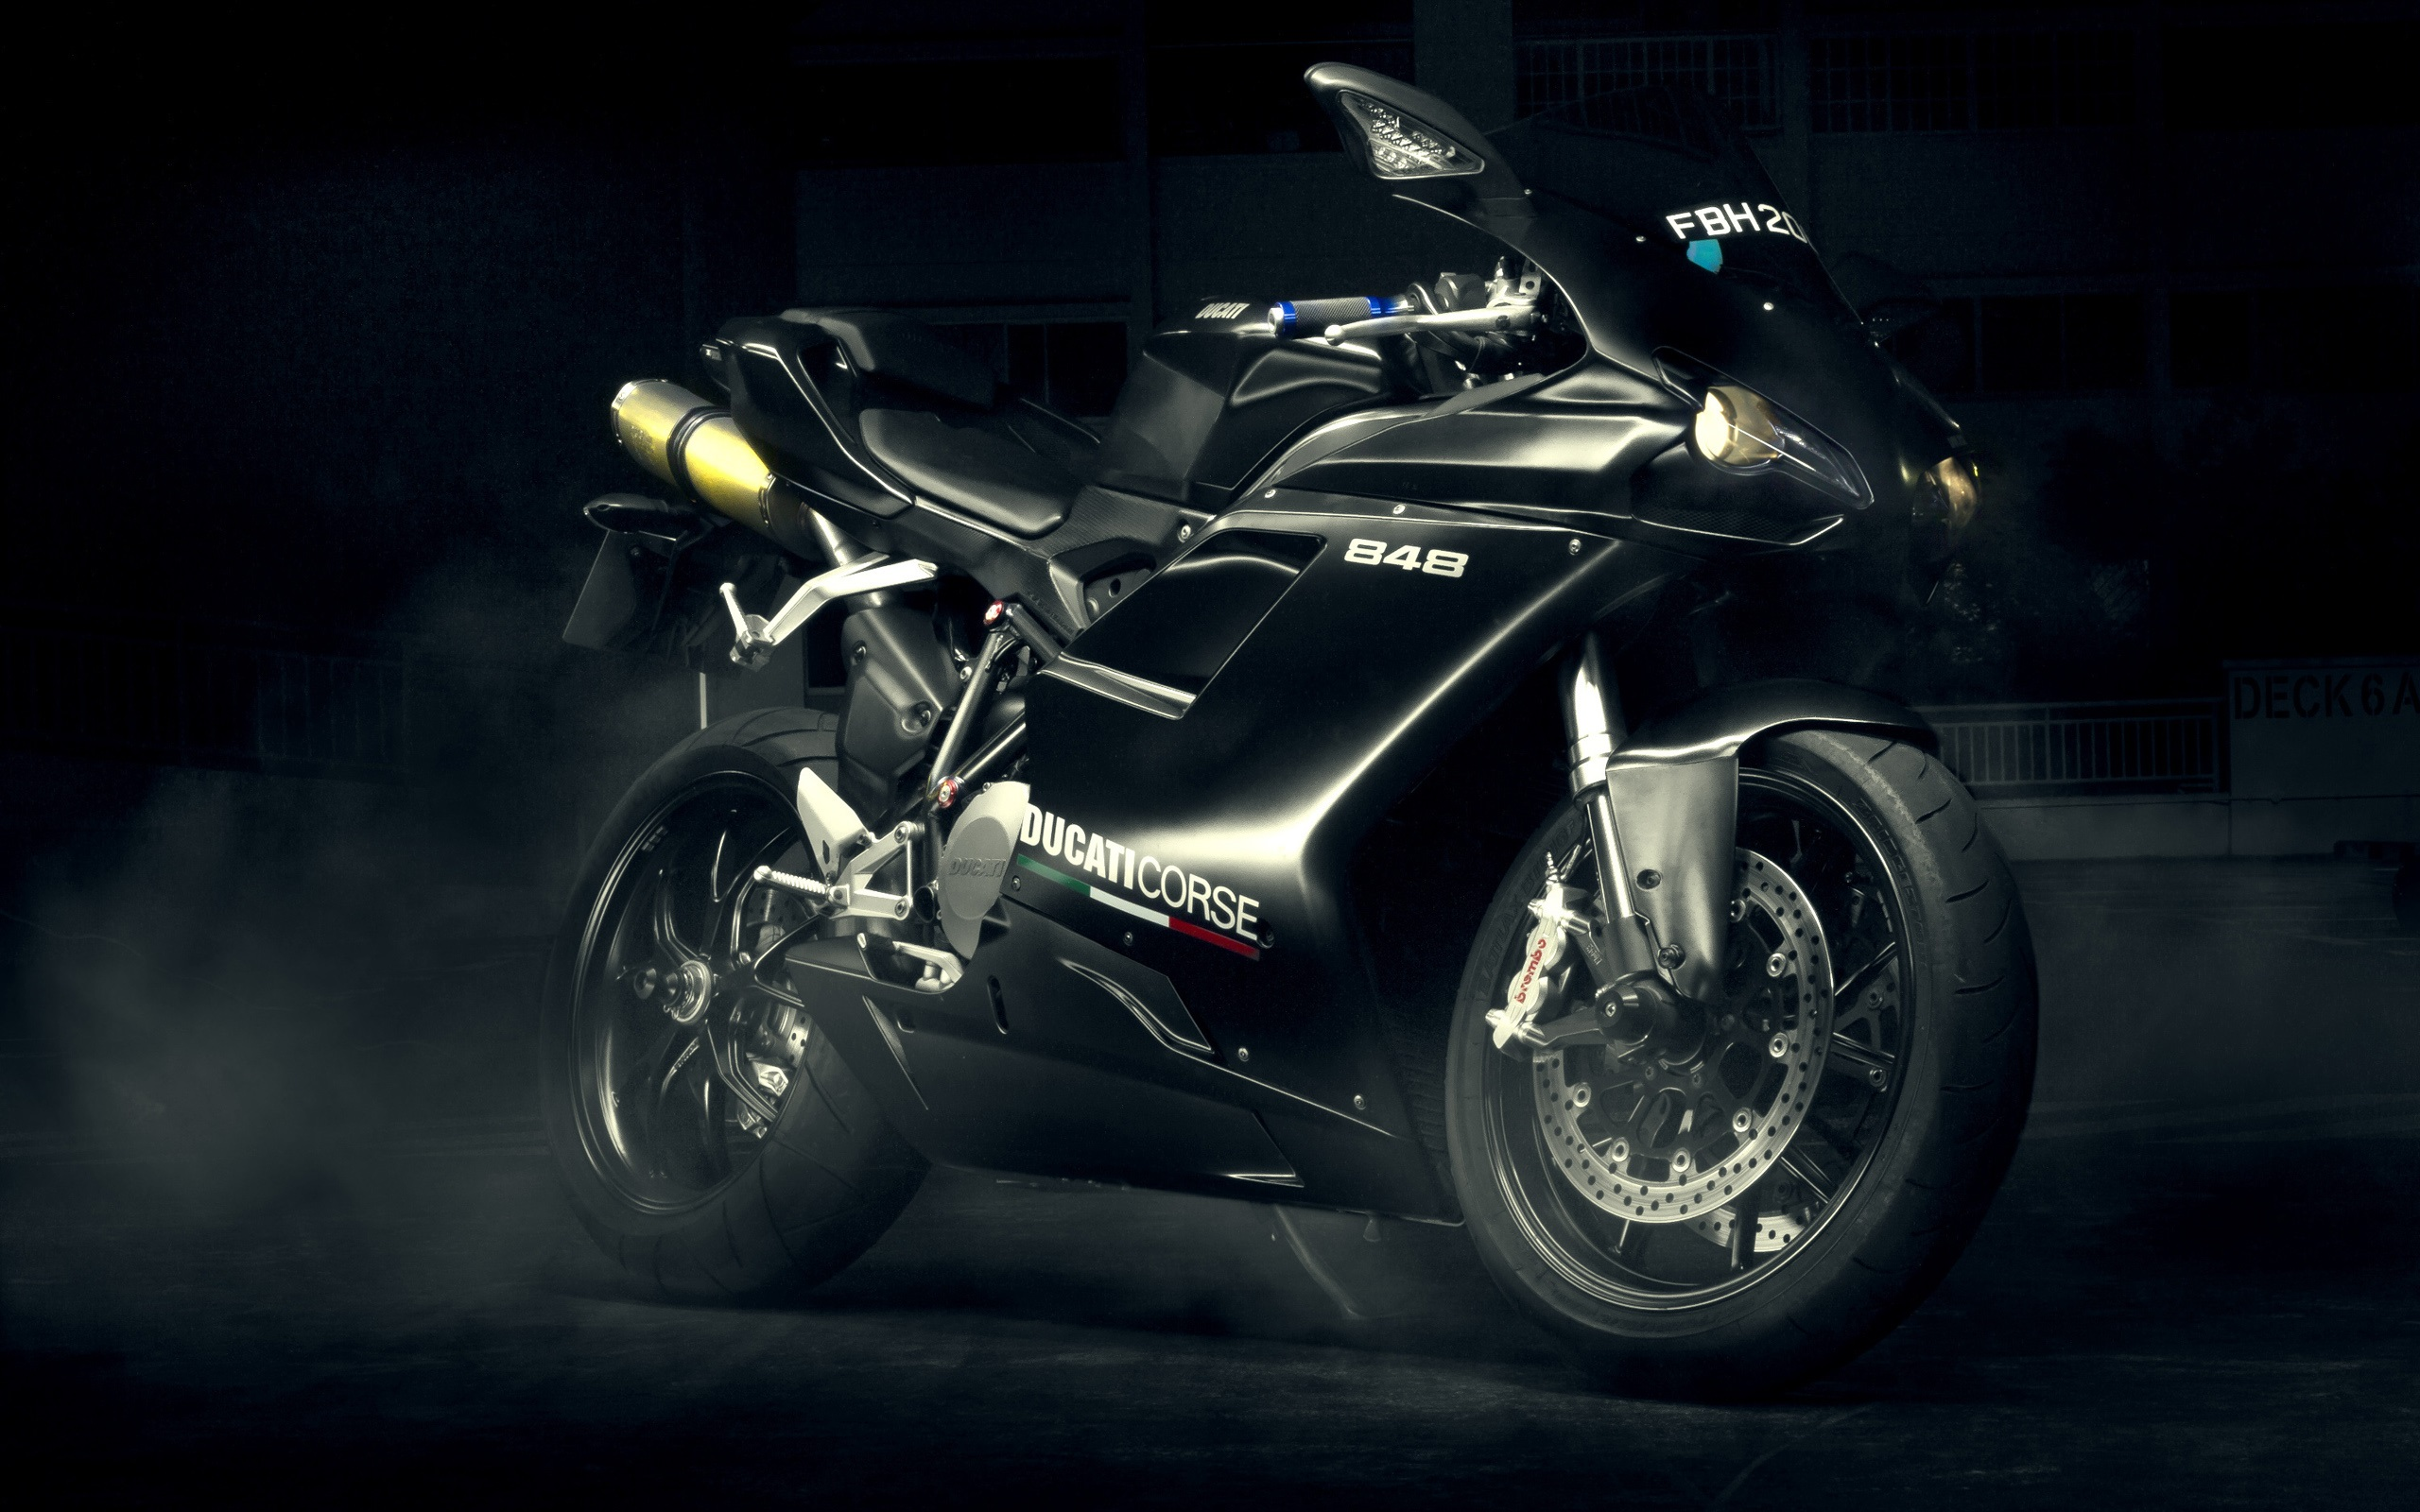 Wallpaper Ducati 848 Evo Black Motorcycle 2560x1600 Hd